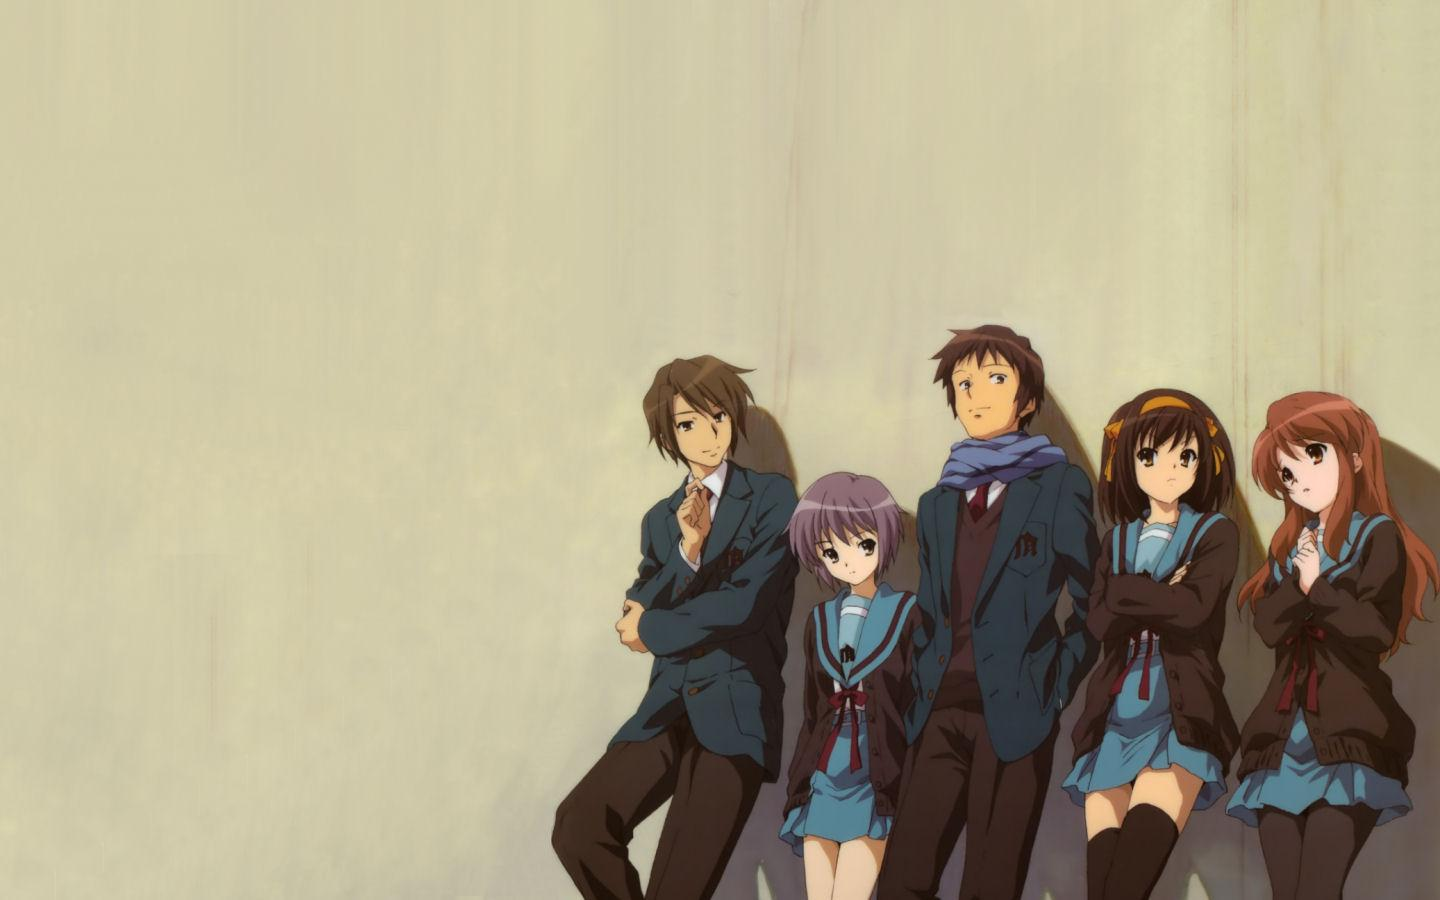 The Melancholy Of Haruhi Suzumiya Wallpapers and Backgrounds Image